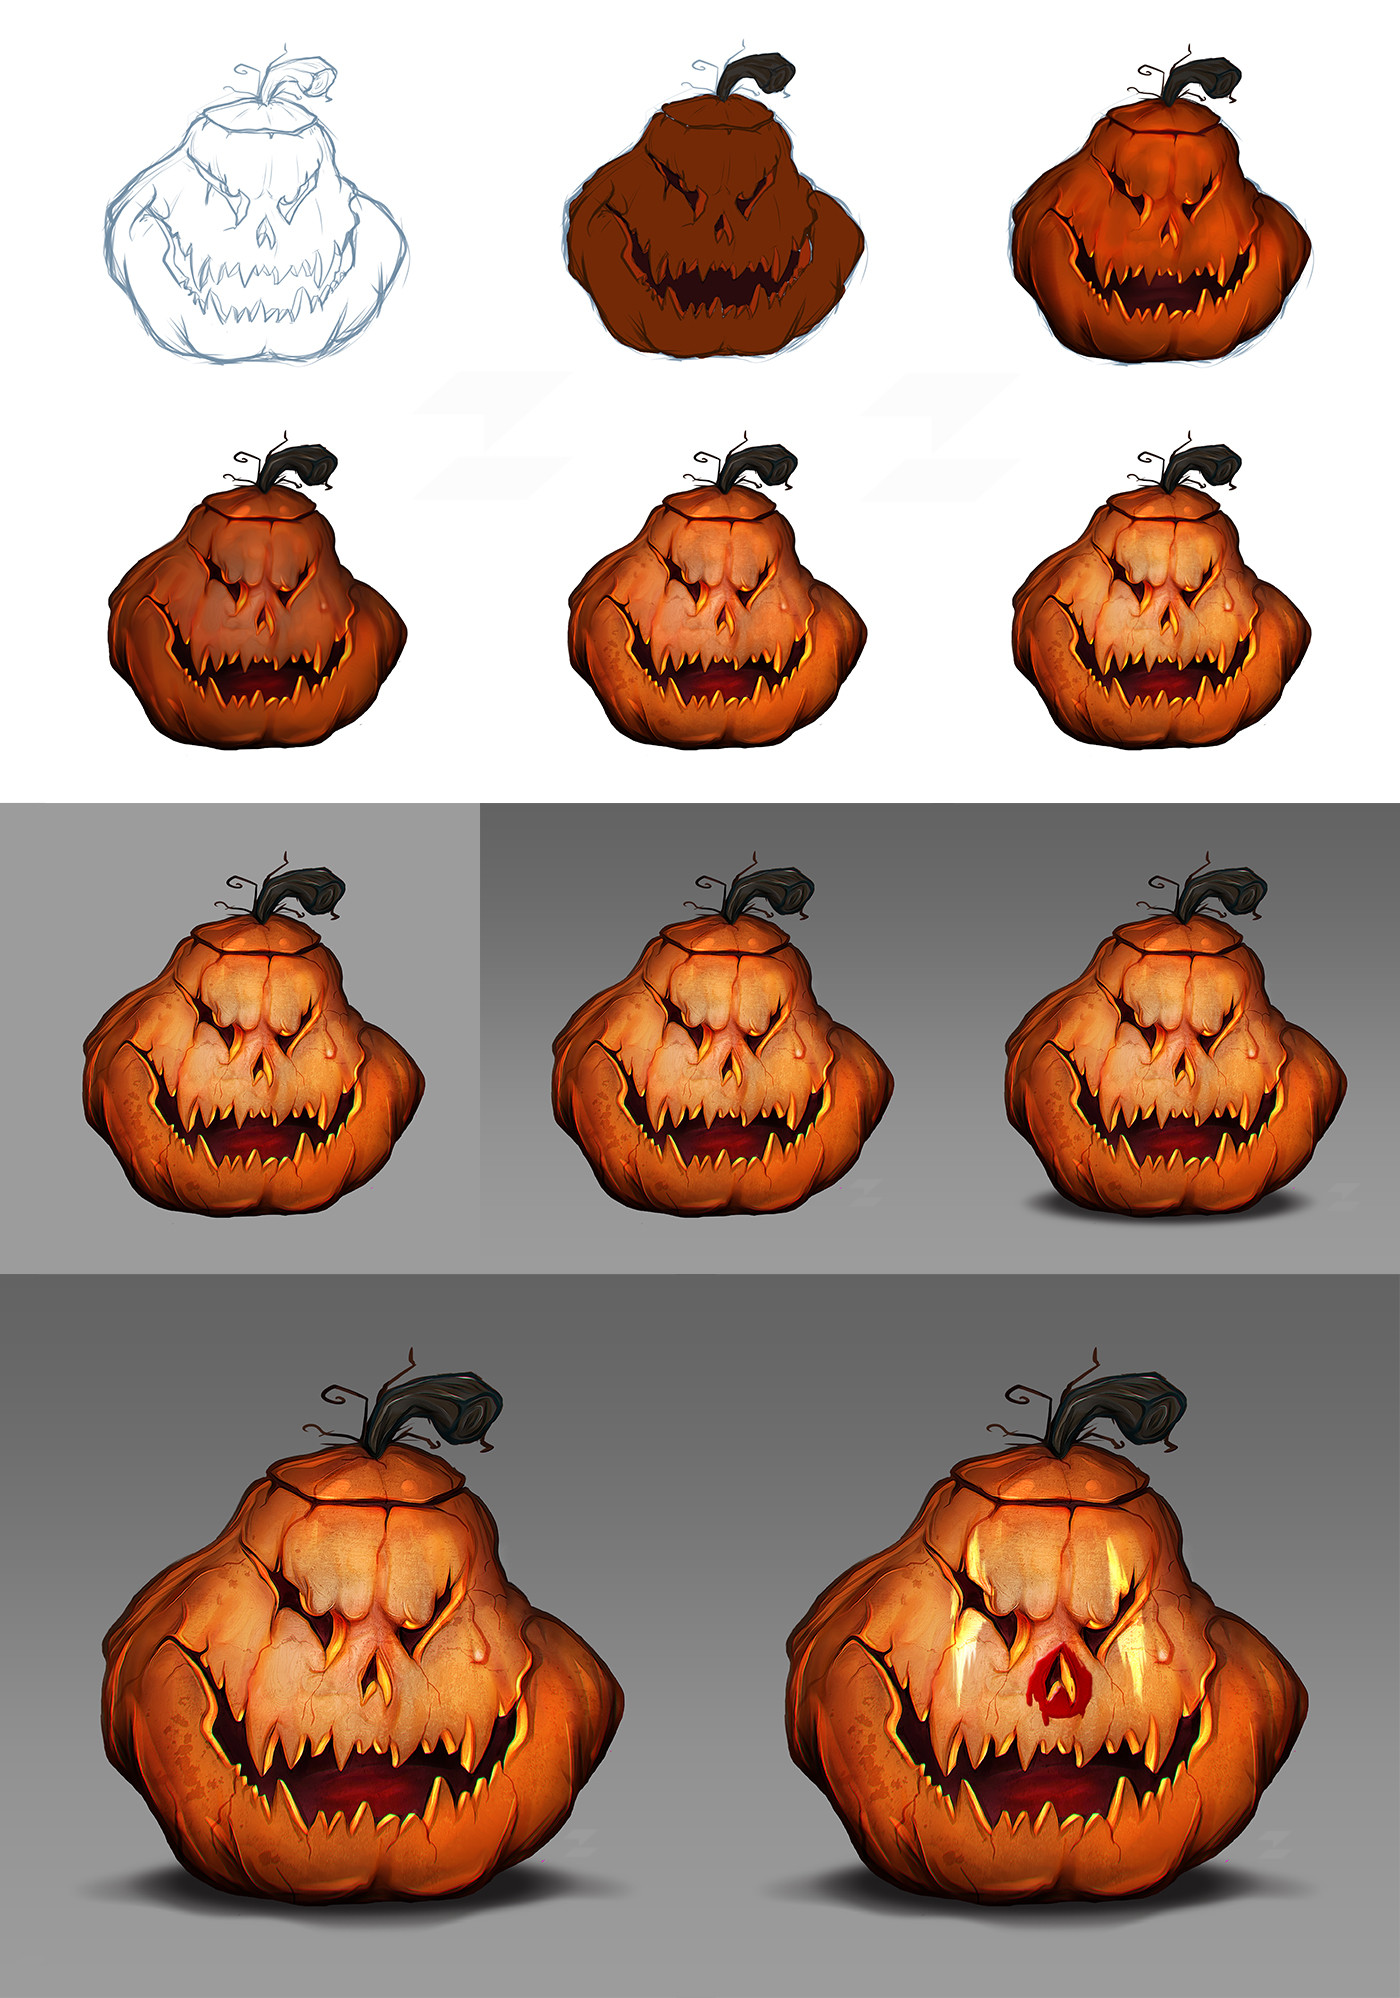 Scary halloween pumpkin - digital drawing